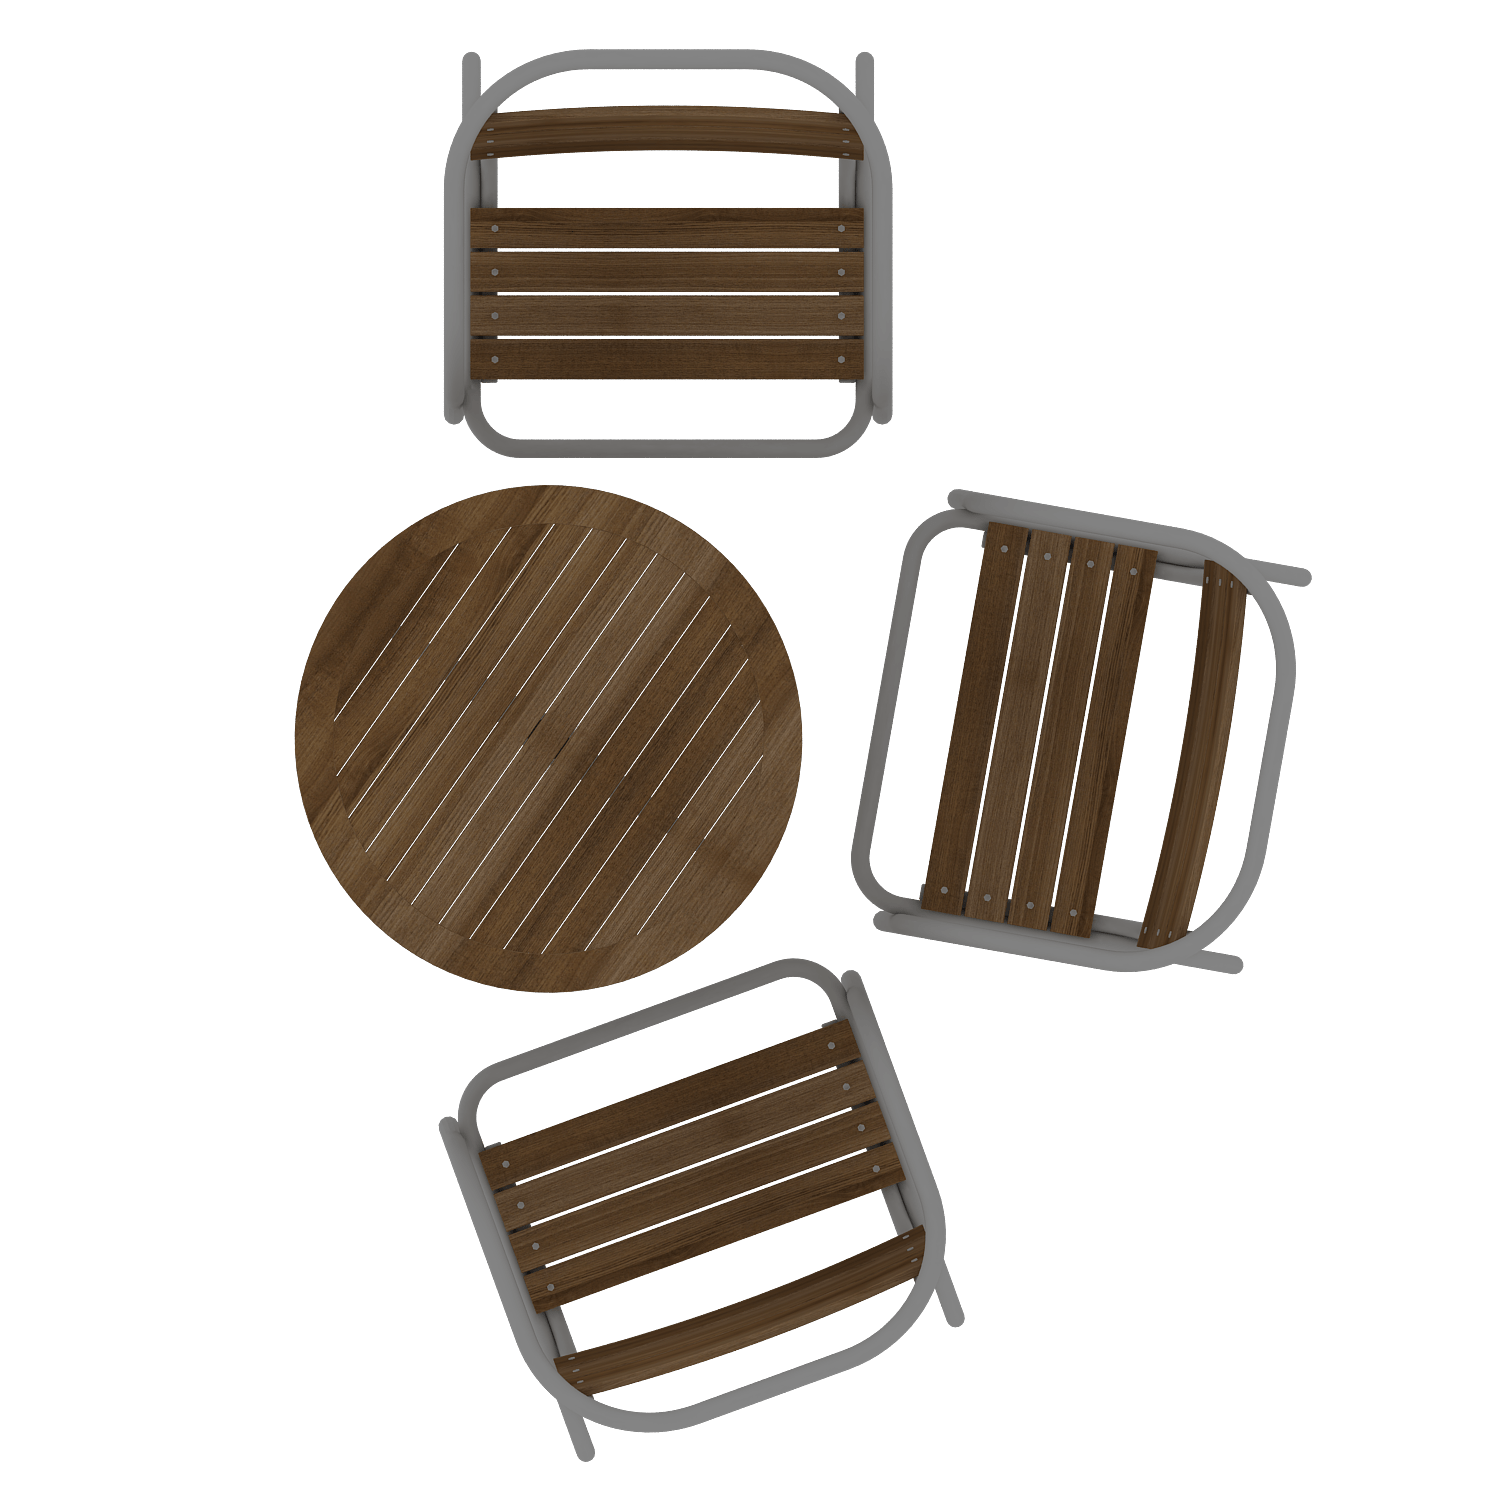 Cool 60 Dining Chair Top View Design Inspiration Of 71